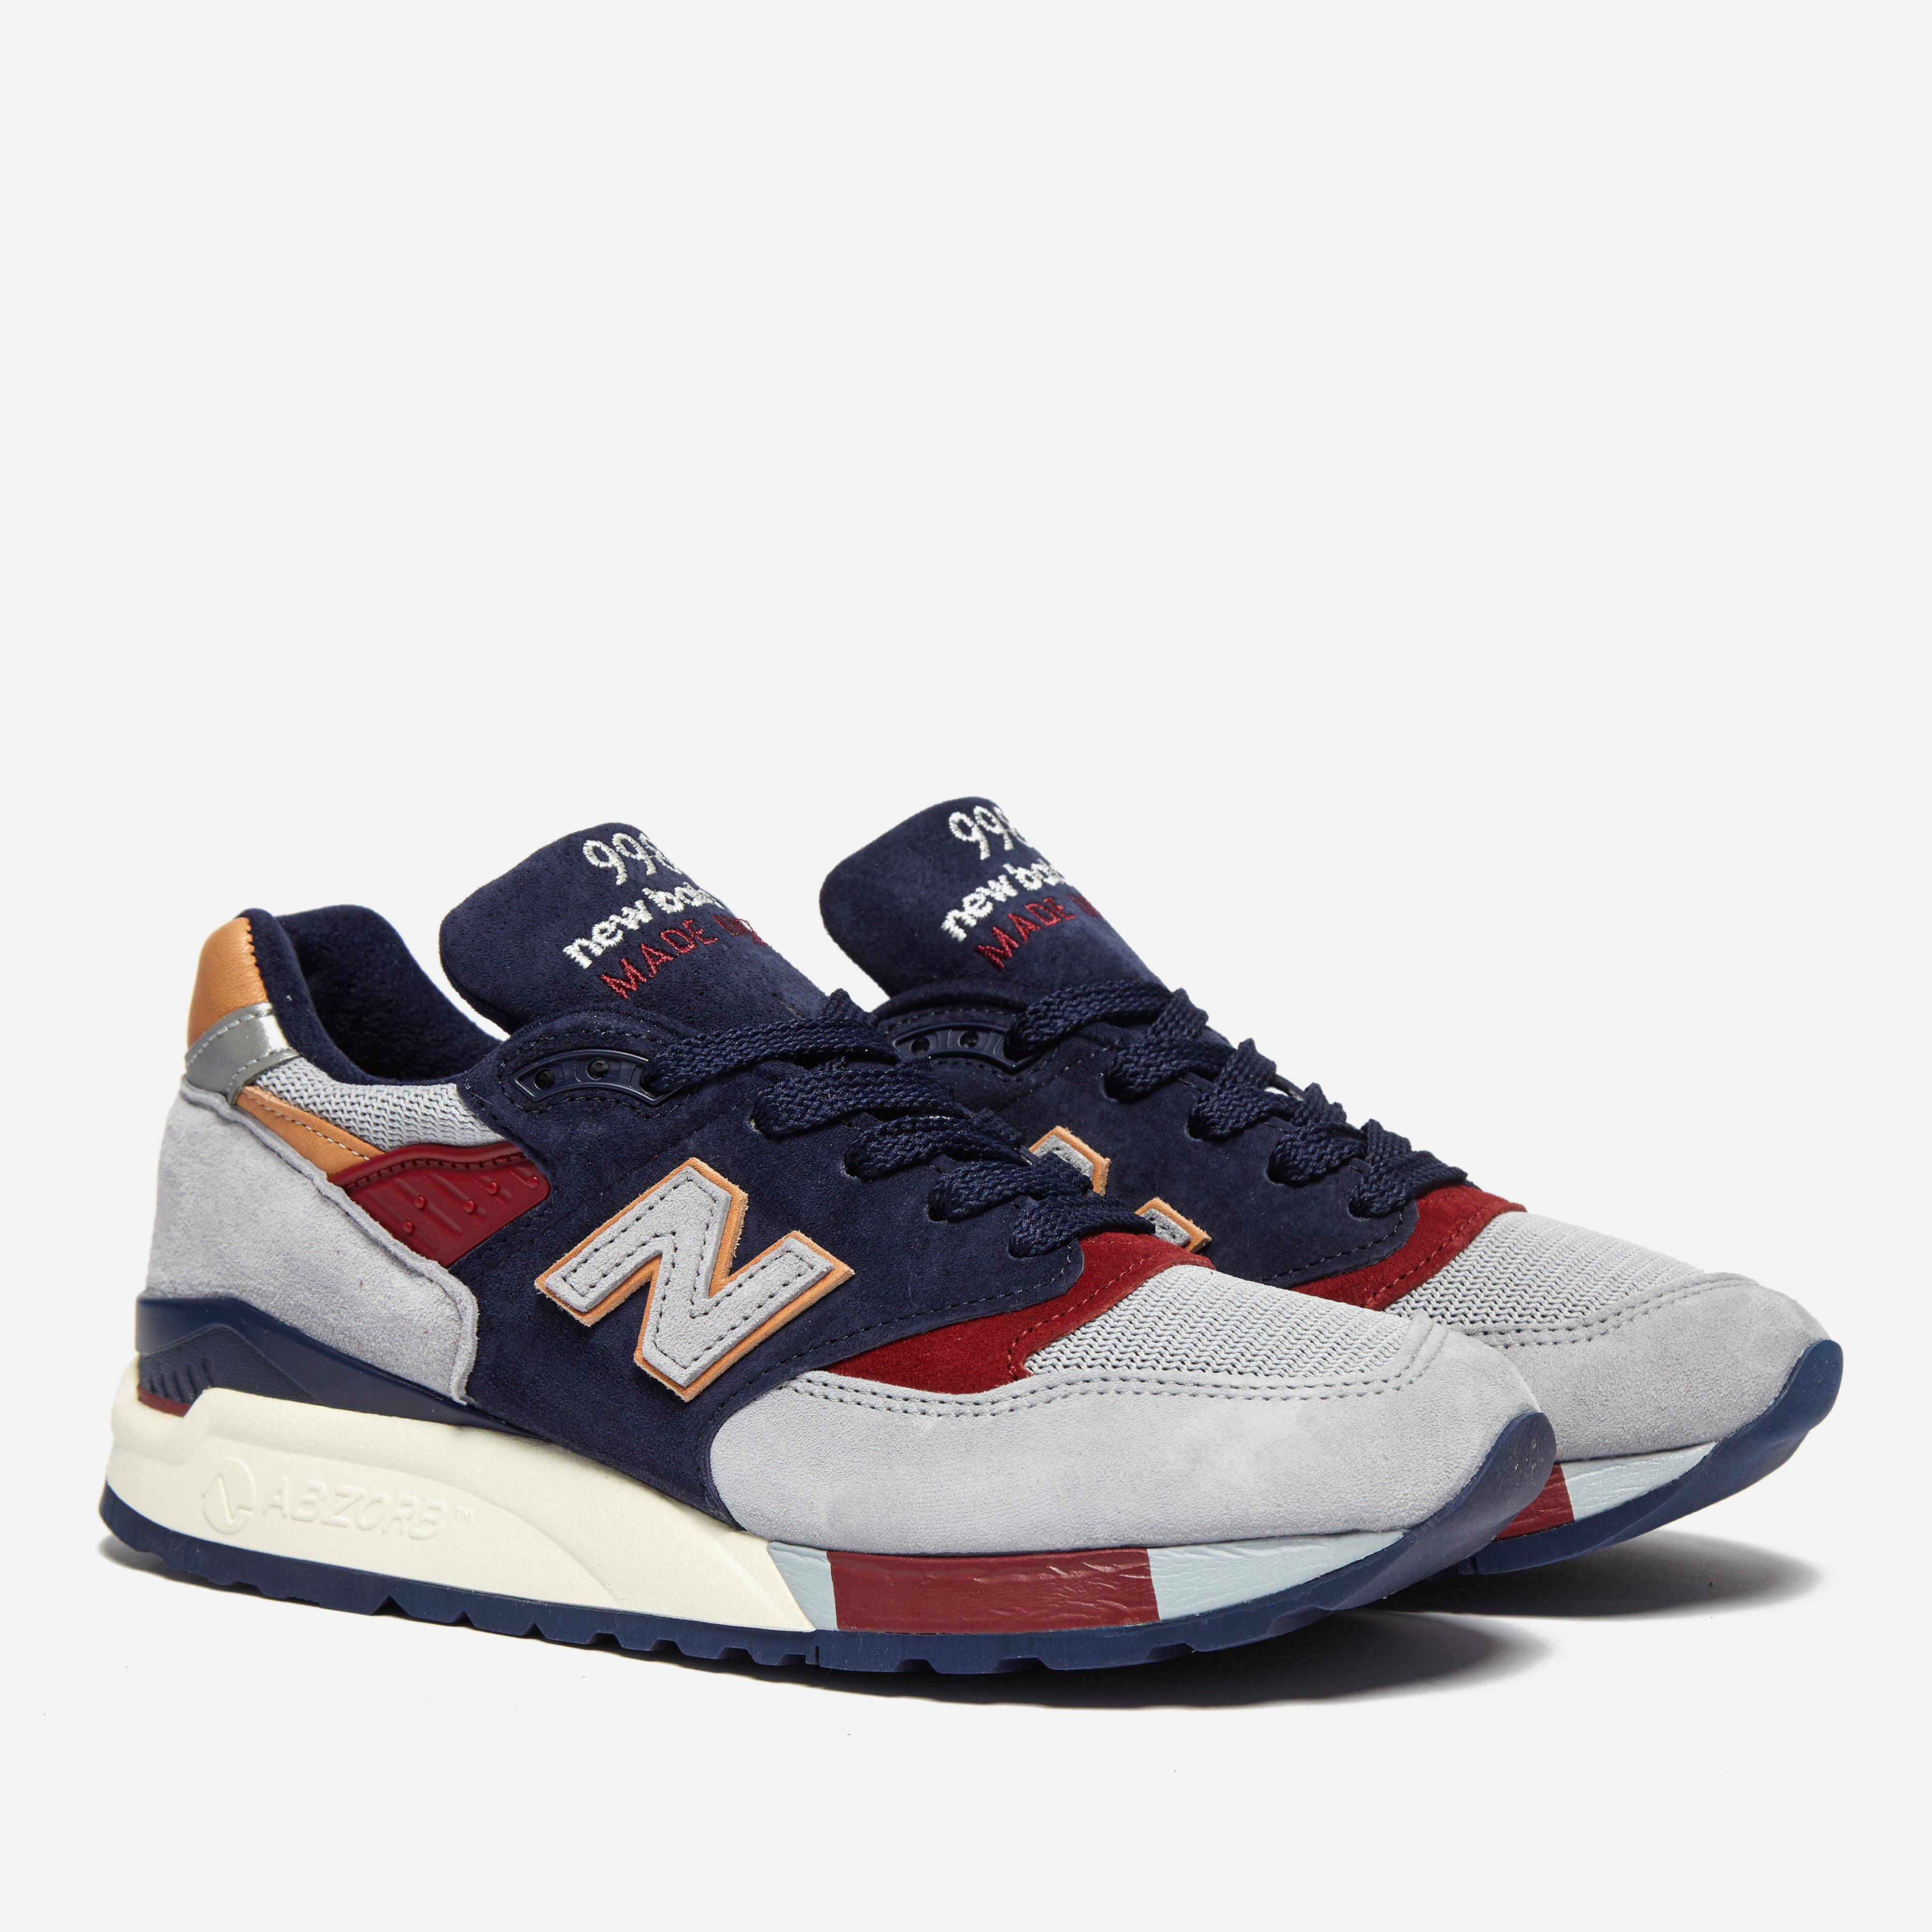 New Balance M 998 CSU Made in USA